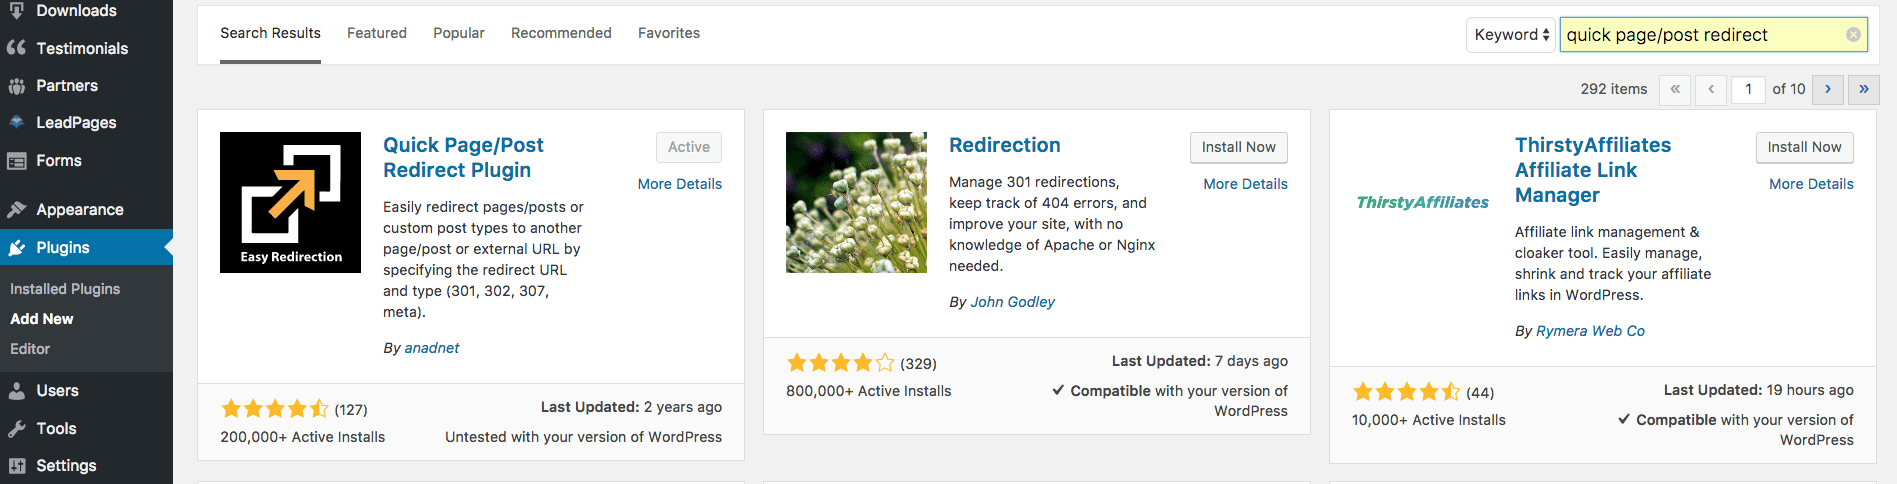 WordPress Add New Plugin Page. Quick Page/Post Redirect is typed into the search bar with the Quick Page/Post Redirect Plugin showing as the first search result, along with other similar plugins.